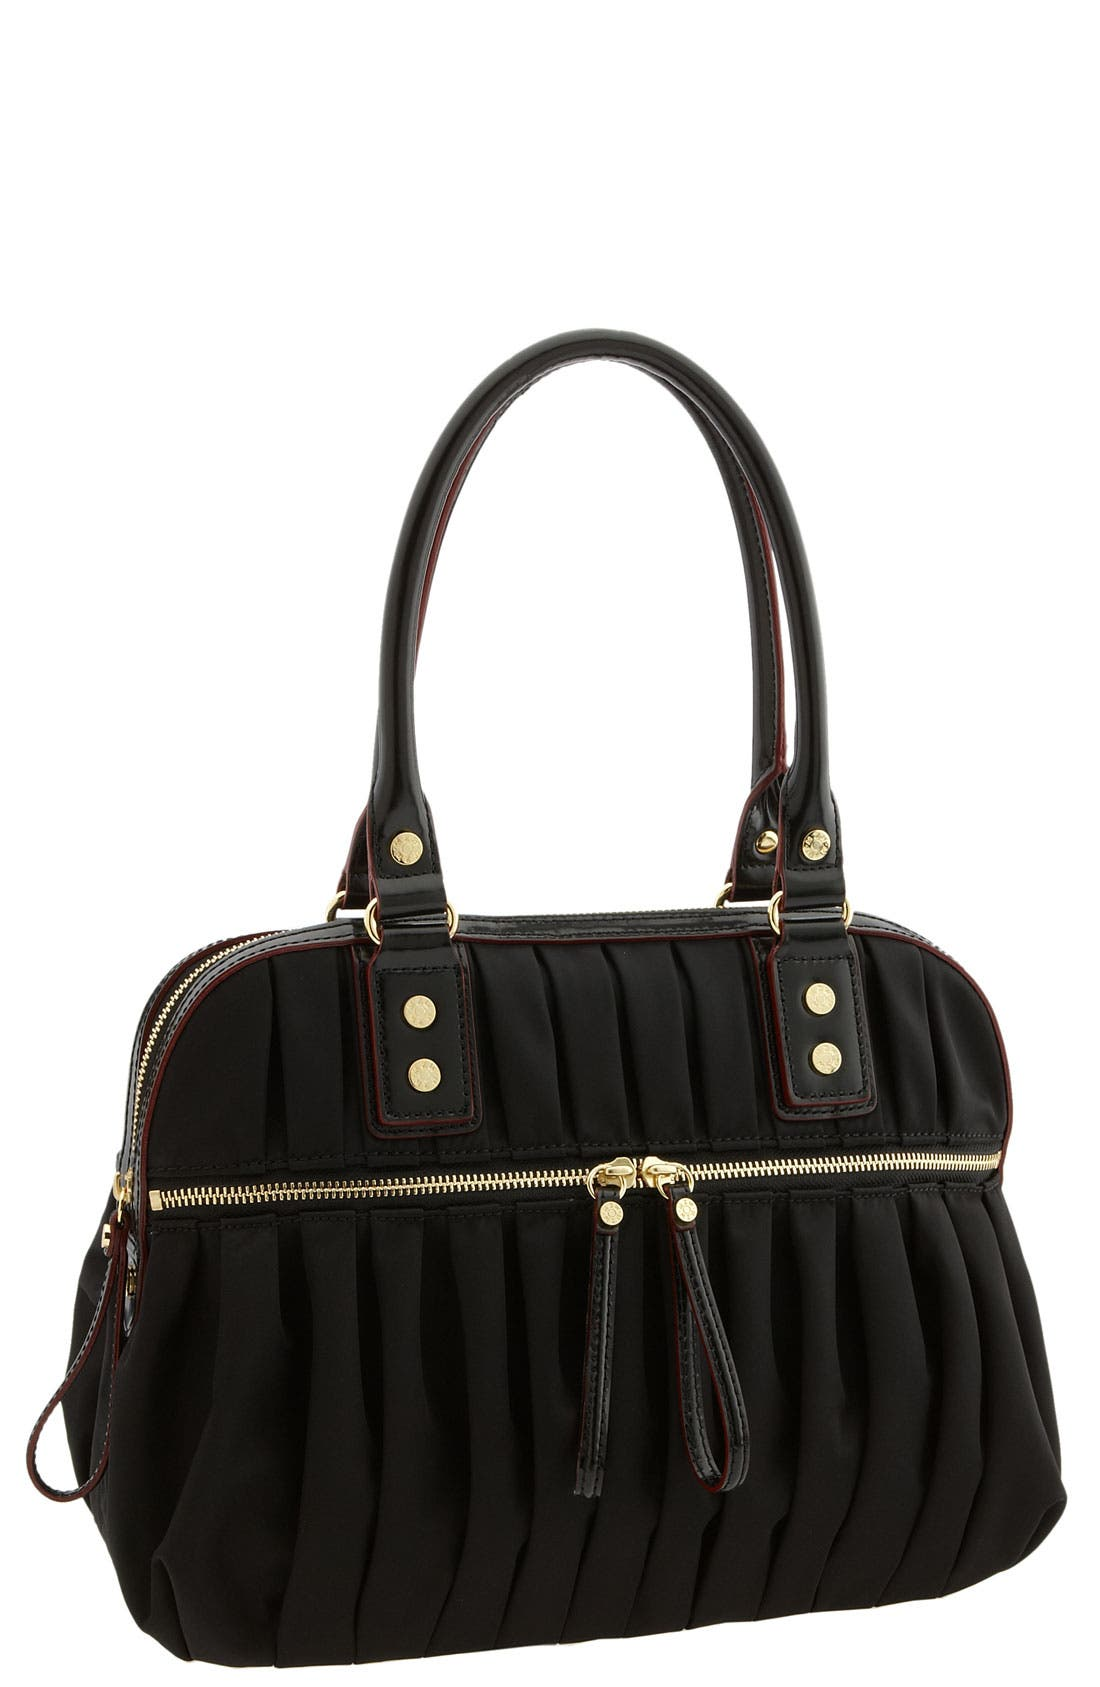 Main Image - MZ Wallace 'Bea' Satchel